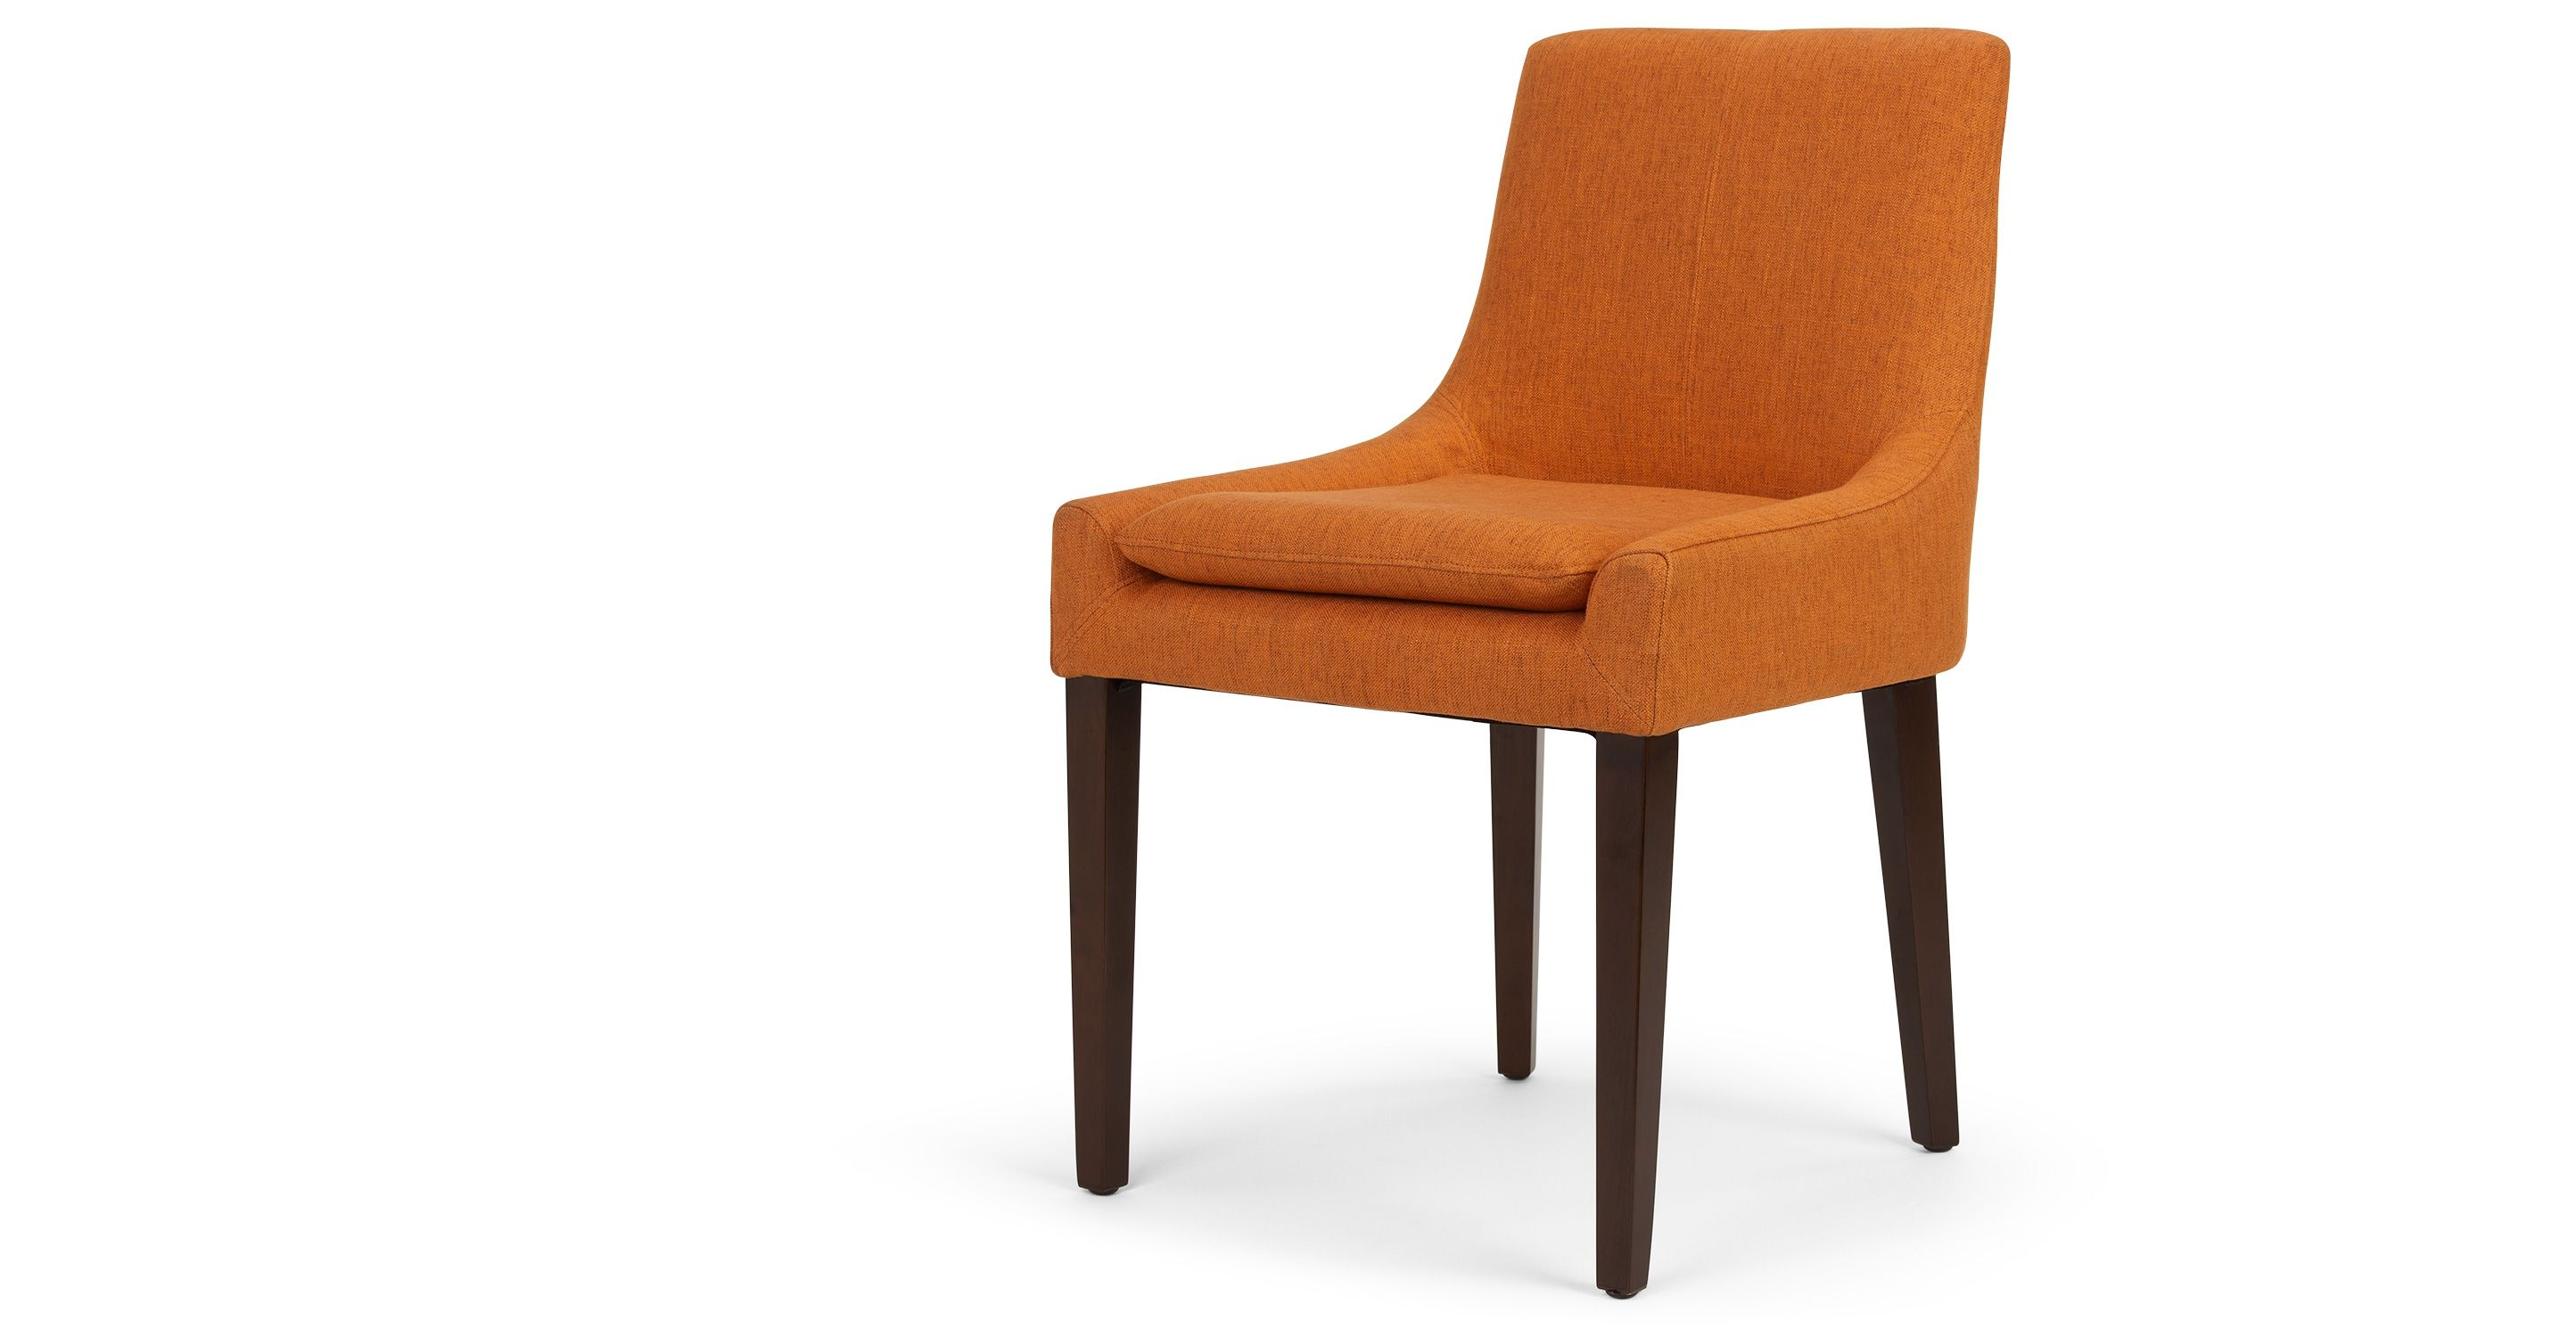 DINING TABLE CHAIRS Percy Scoop Back Chair, Marigold Orange